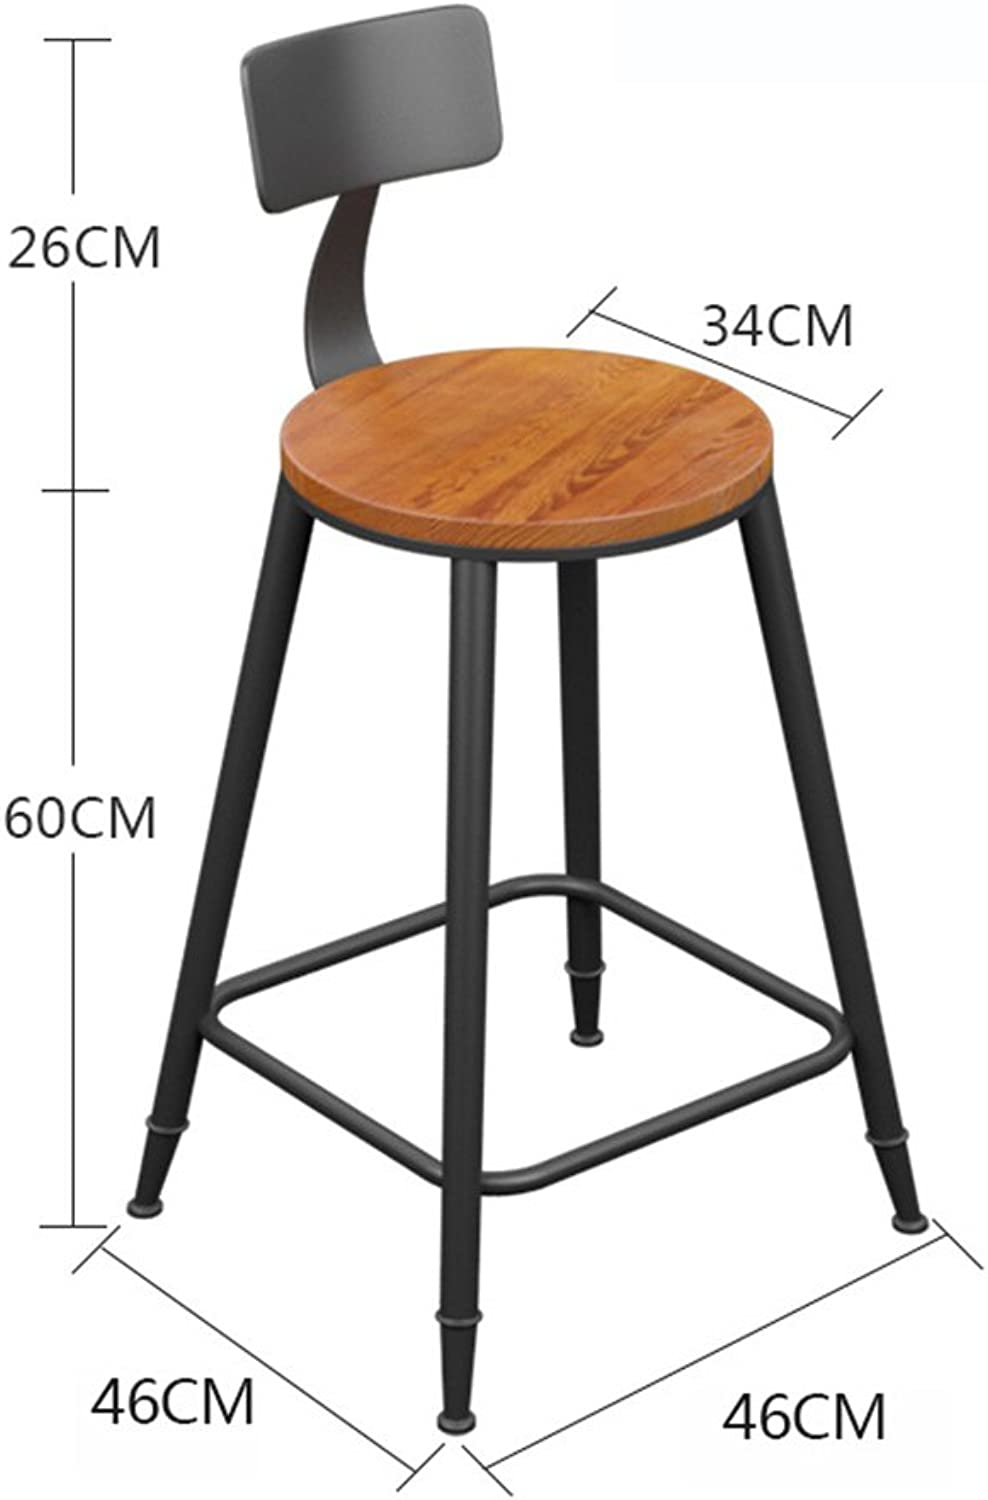 Chair Bar Chair Breakfast Chair Family Wrought Iron Chair Nordic Style Garden Brown Wooden (Size   Height 60cm)